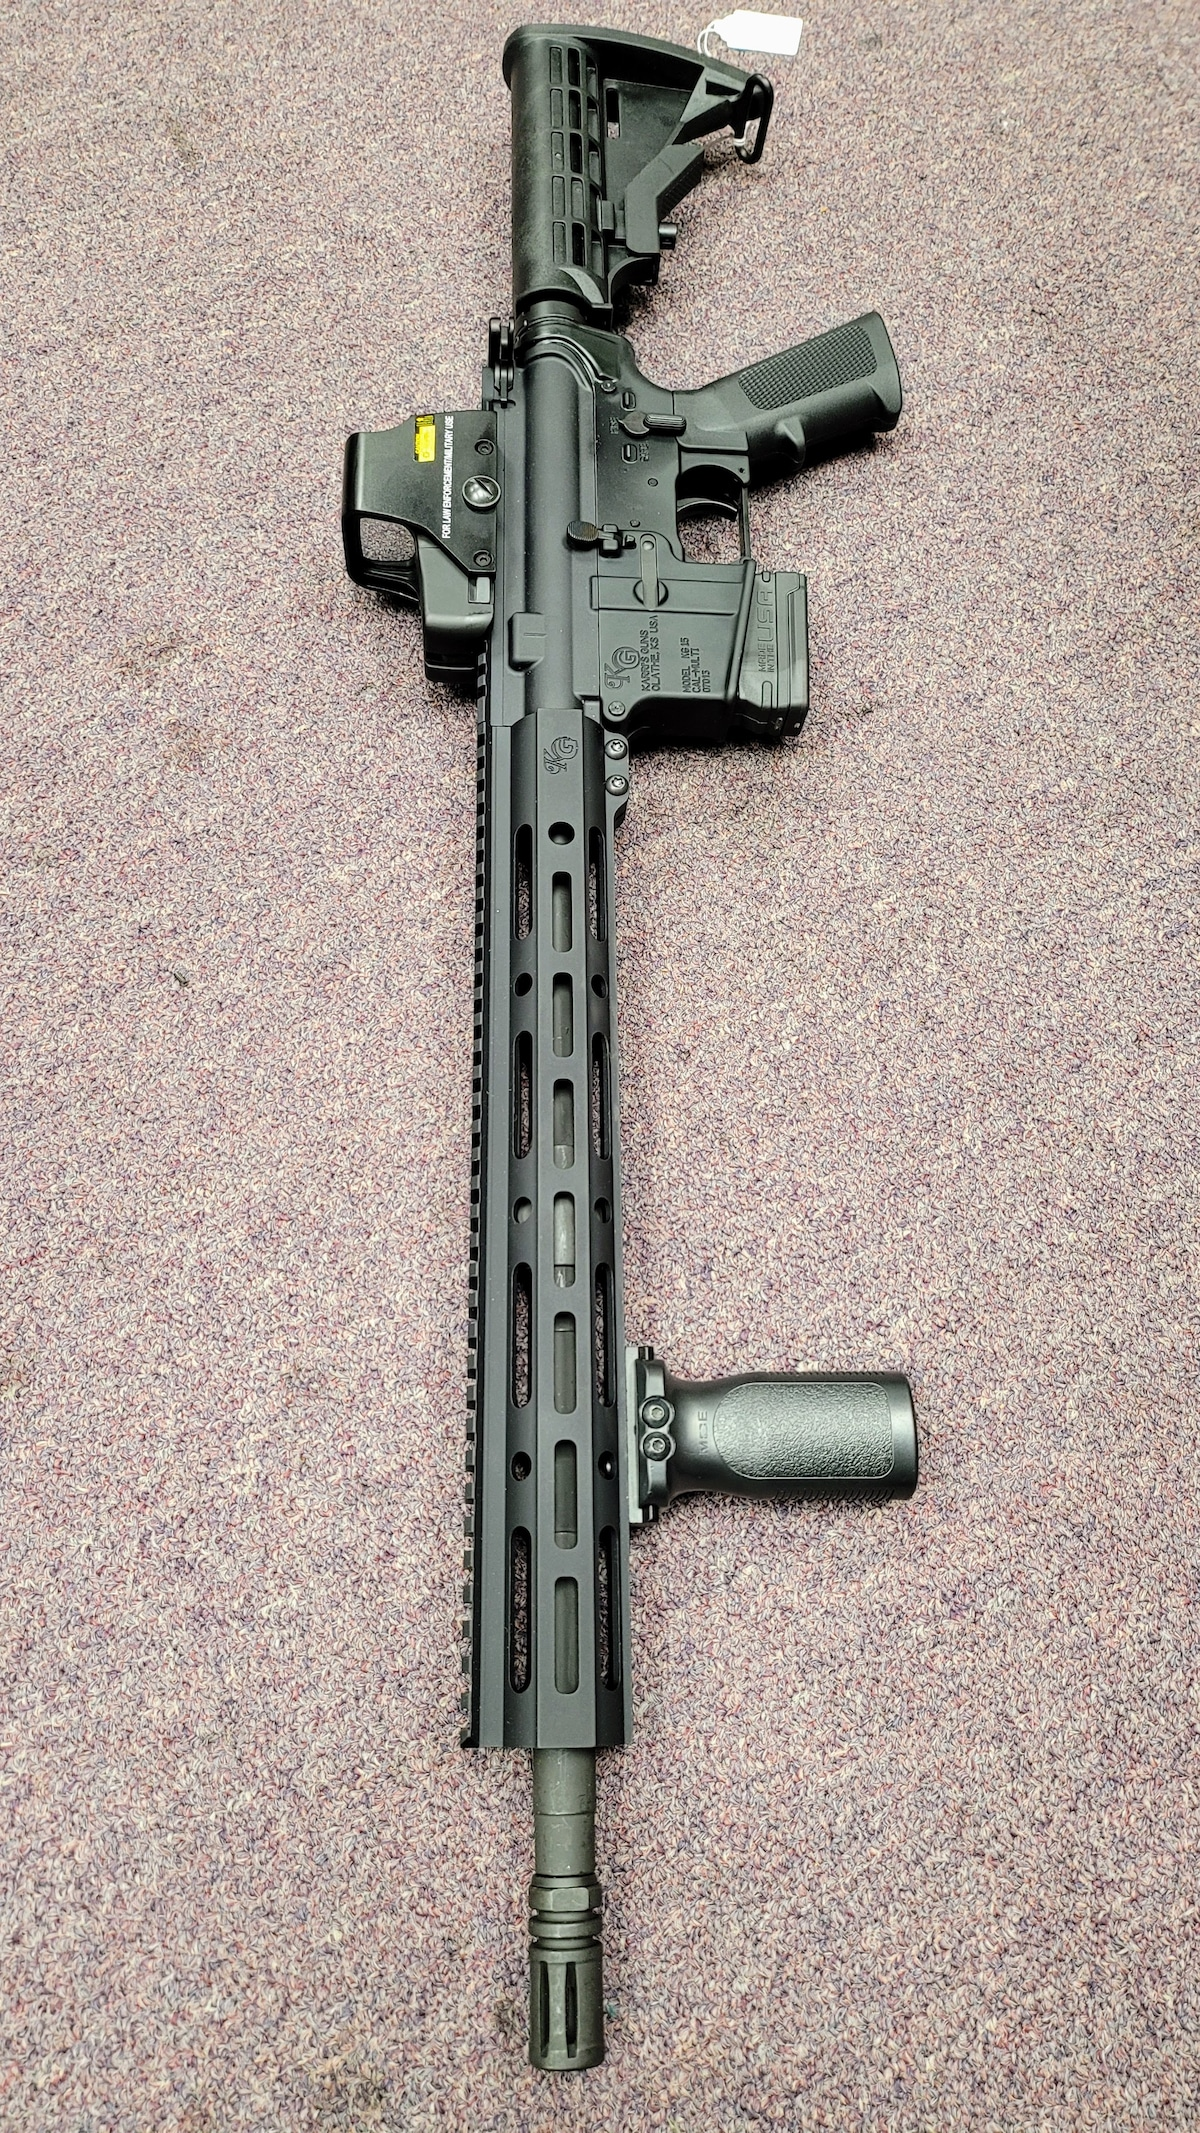 KARRI'S GUNS KG-15 AR with 10rd magazine and red dot sight